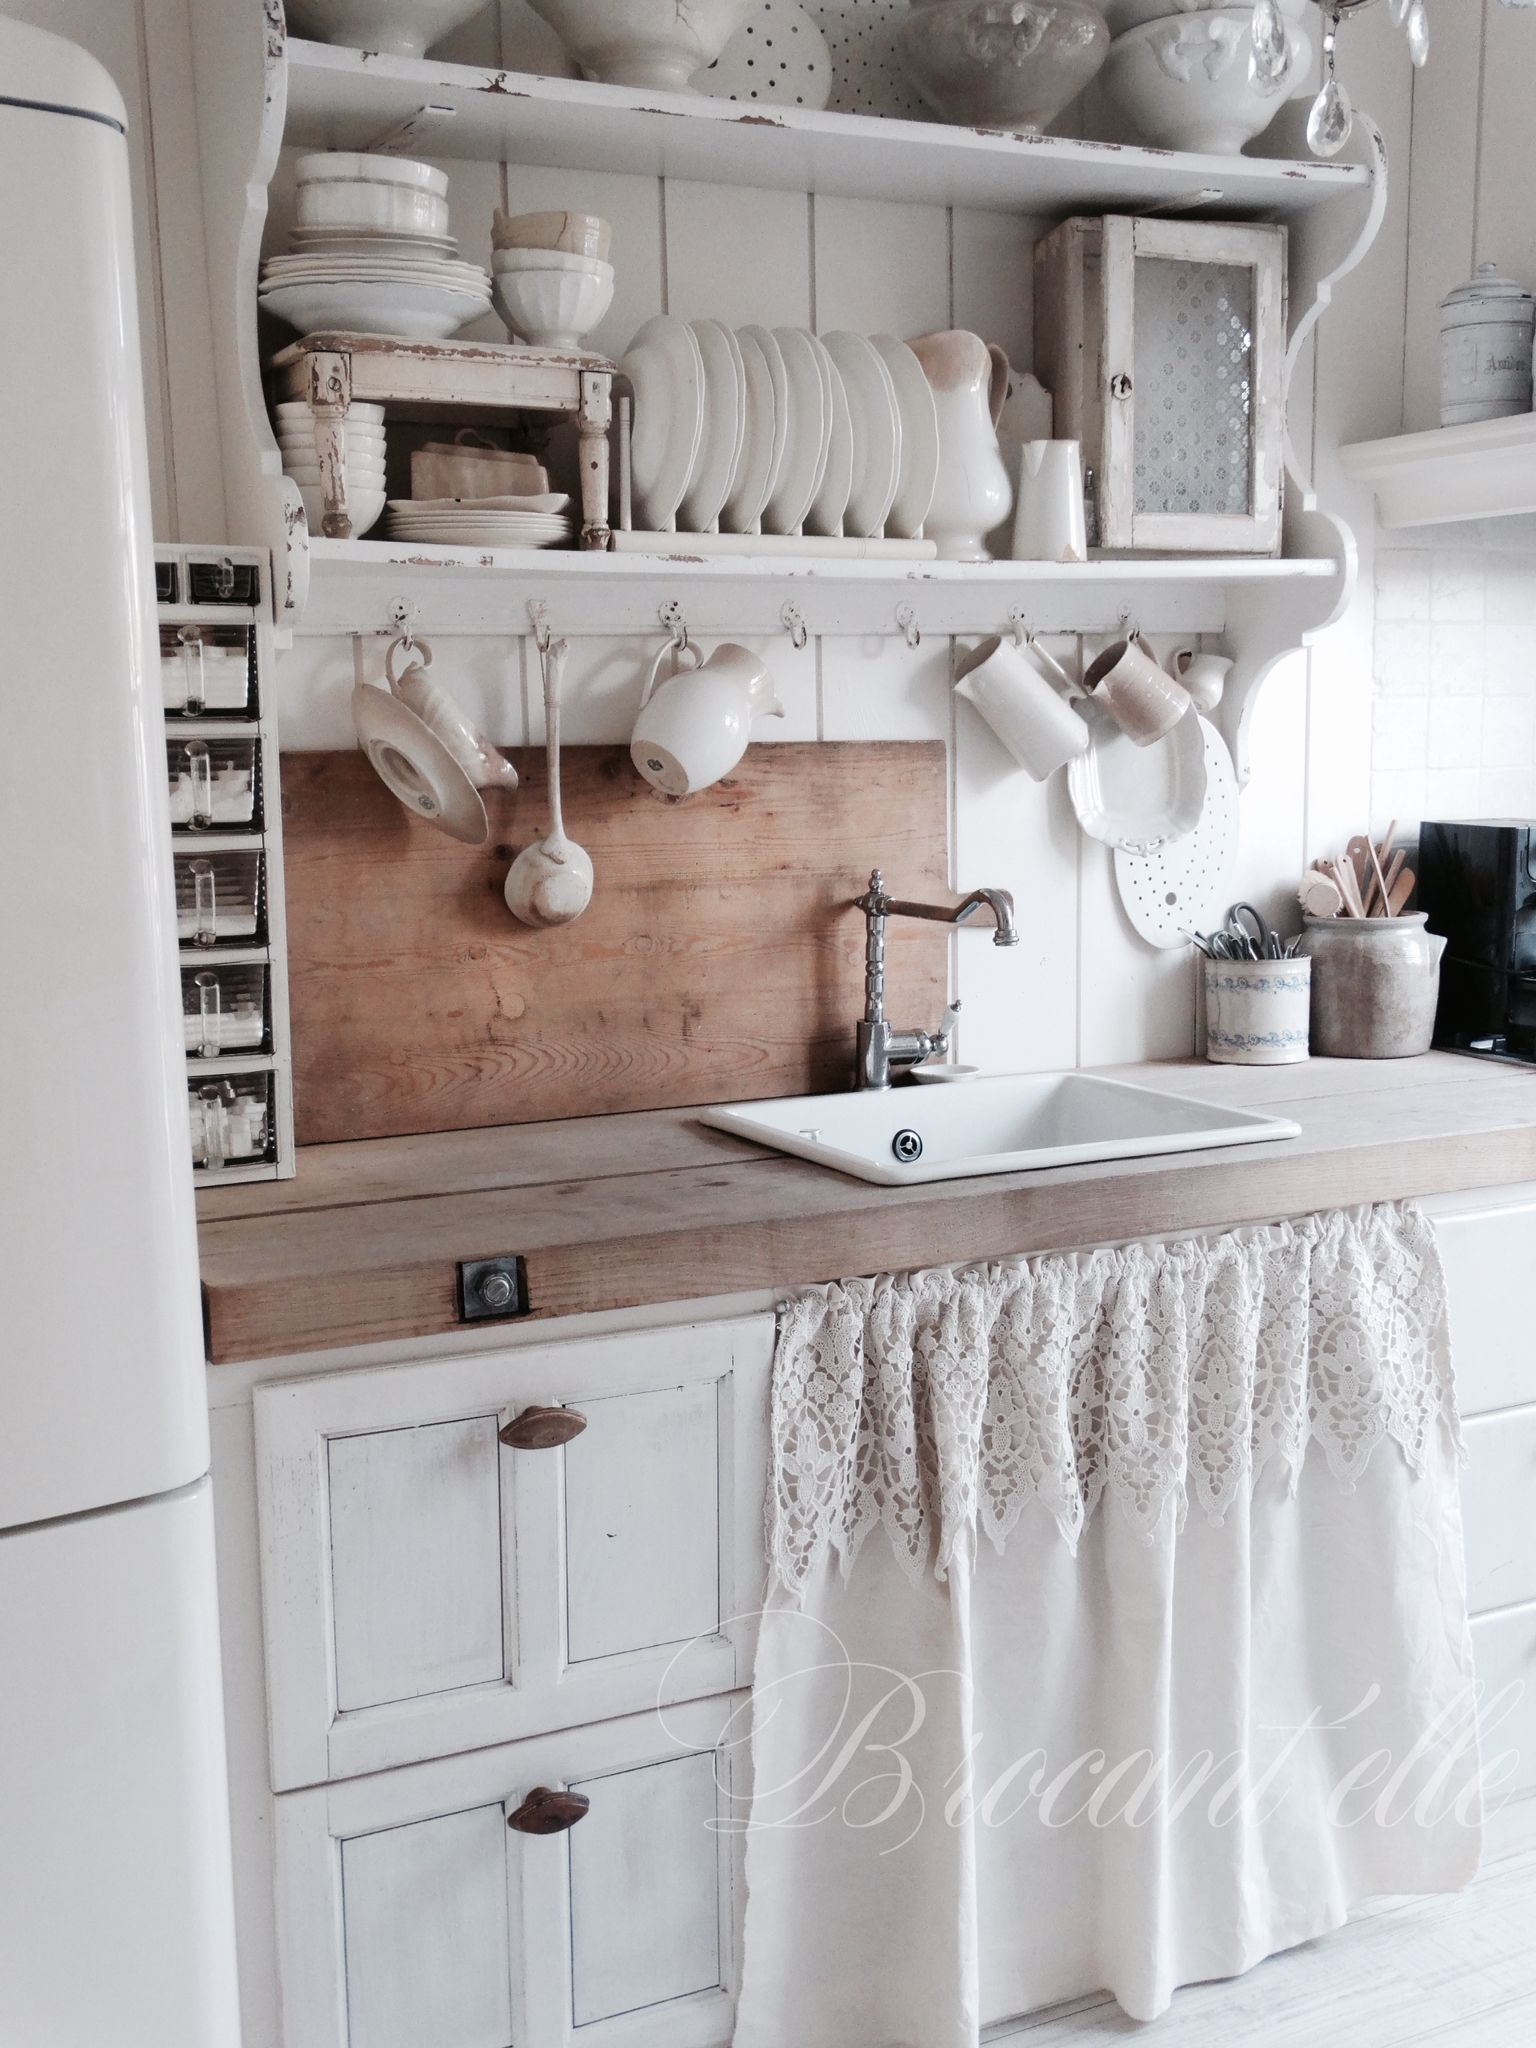 Best Kitchen Gallery: If I Had An Old Farmhouse This Is Exactly What I'd Do The Curtain of Old Farmhouse Kitchen Cabinets on rachelxblog.com